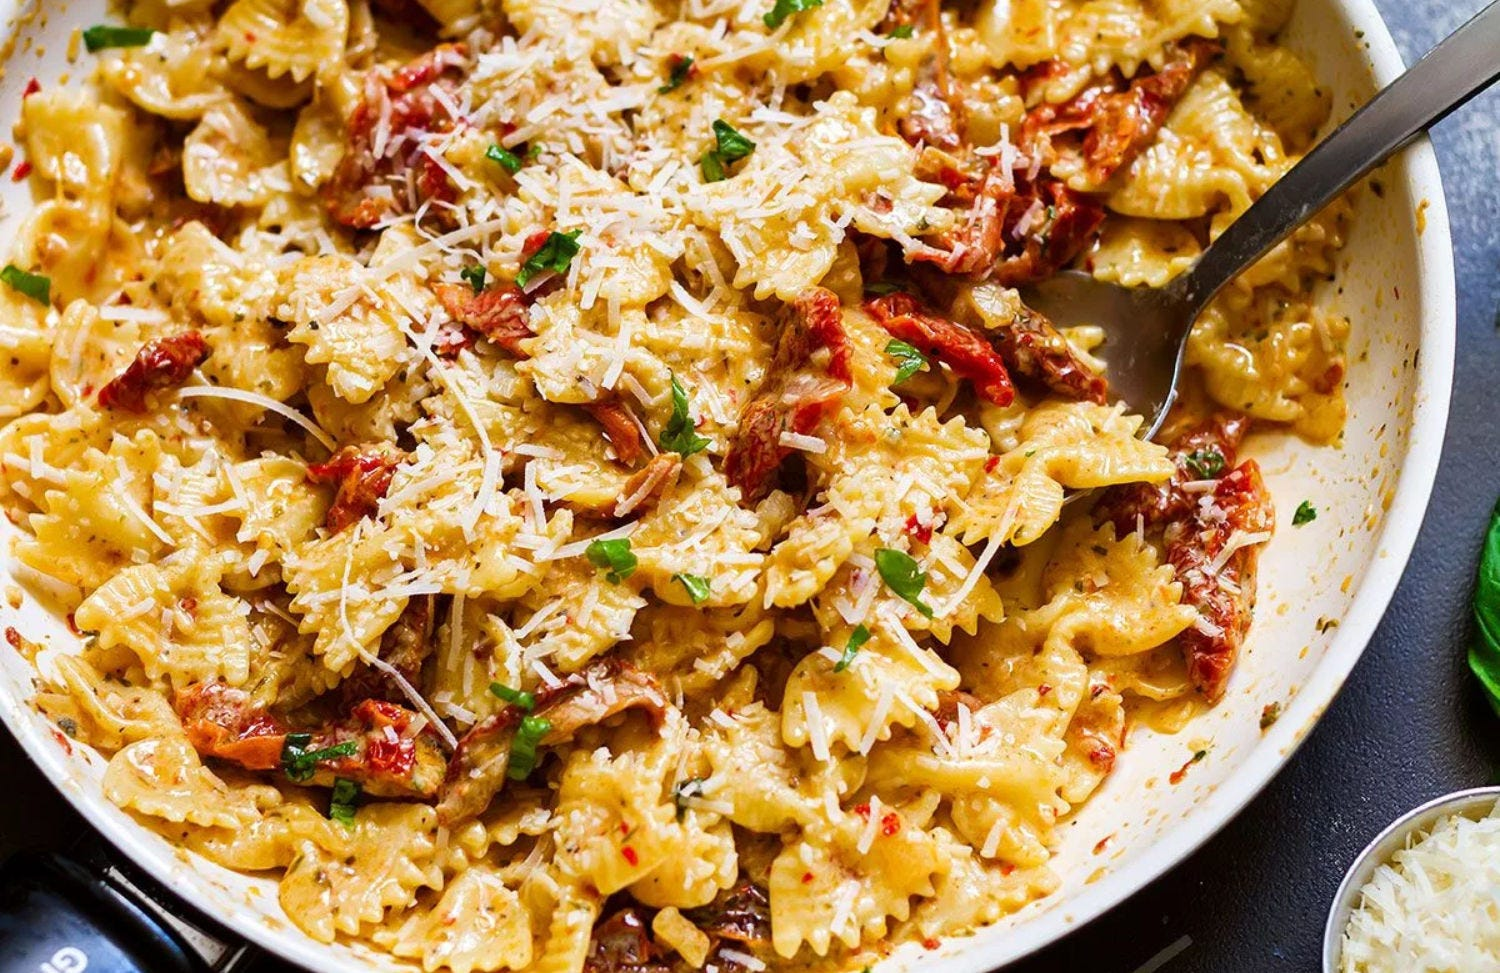 Sun dried tomato pasta in a skillet topped with grated Parmesan cheese.